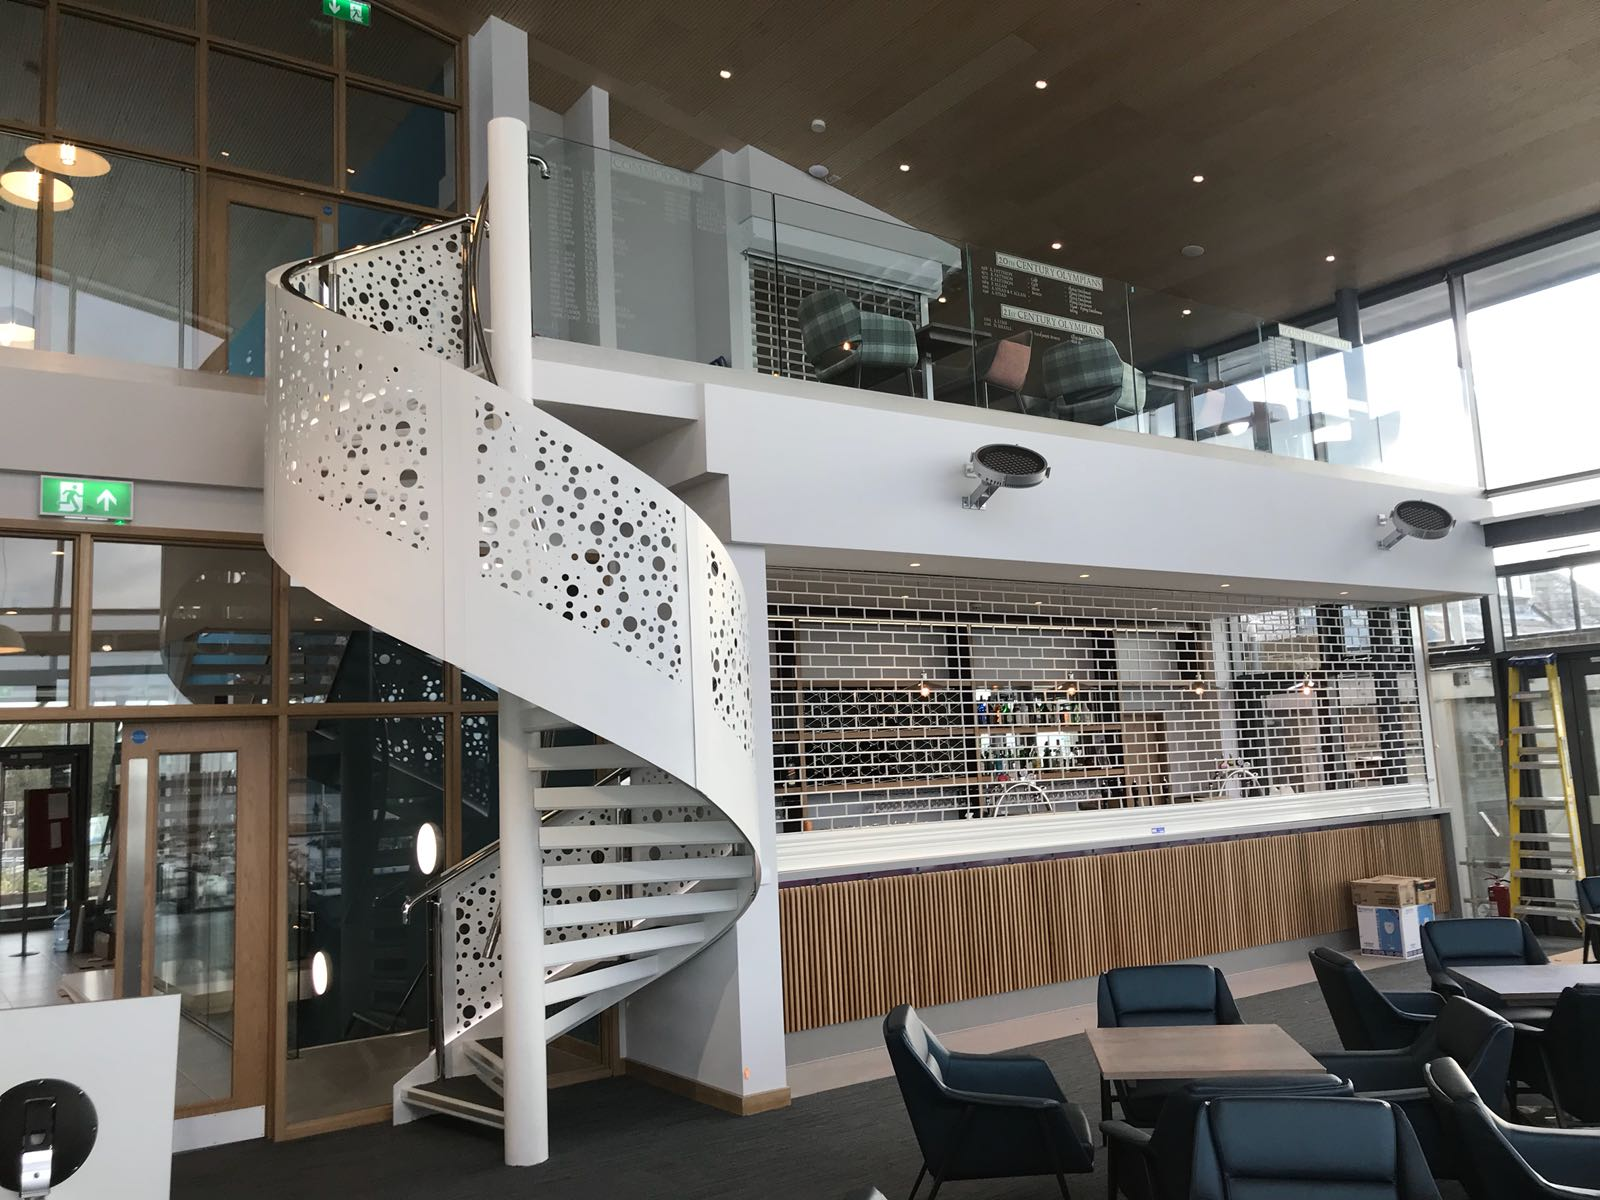 Interior Spiral Staircase for a venue in Parkstone, Poole